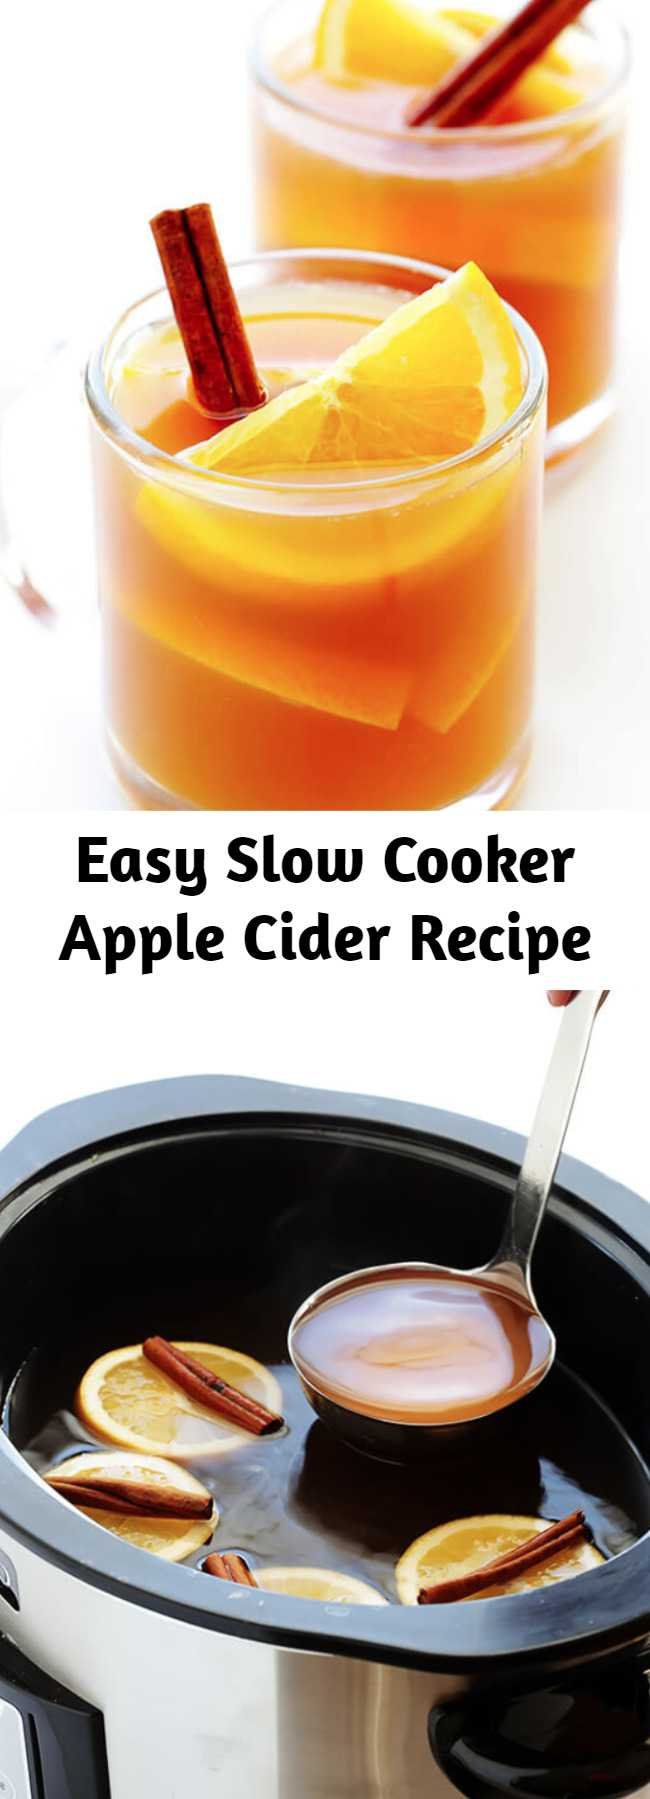 Easy Slow Cooker Apple Cider Recipe - This Slow Cooker Apple Cider recipe is easy to make from scratch, and full of the best sweet cinnamon apple flavors!